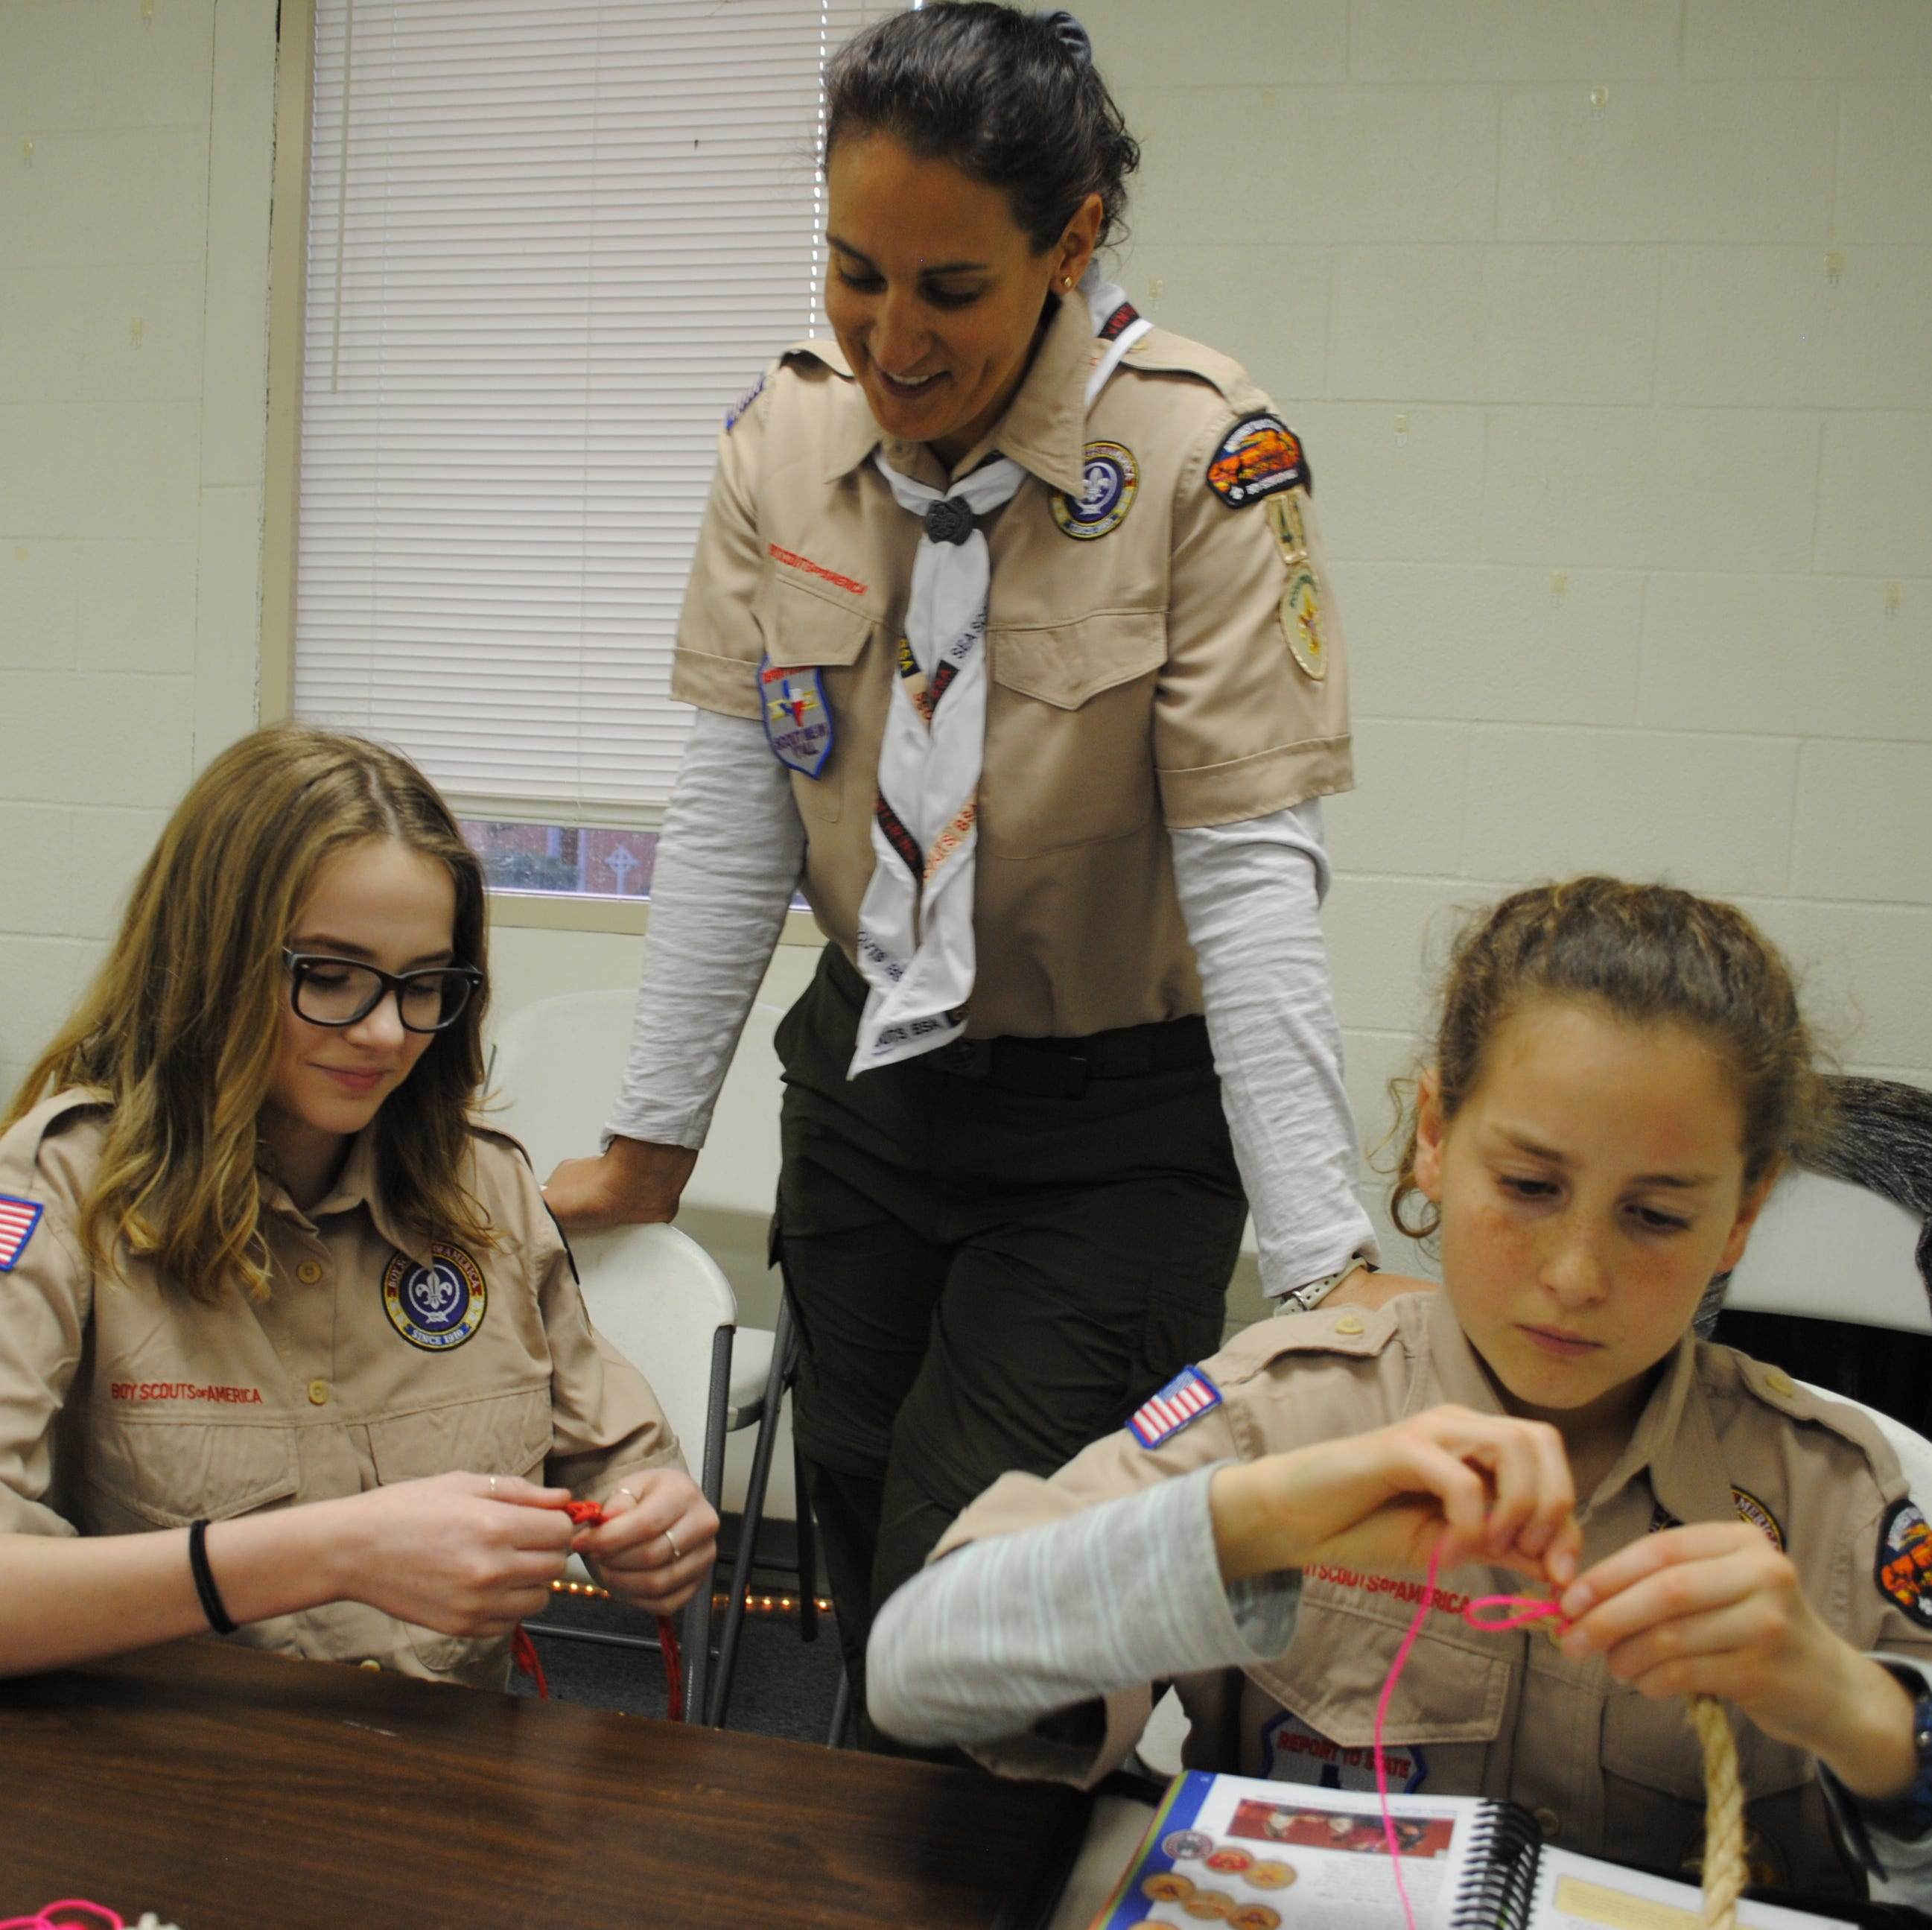 Prepared for life: First female Boy Scout troops begin in Wichita Falls